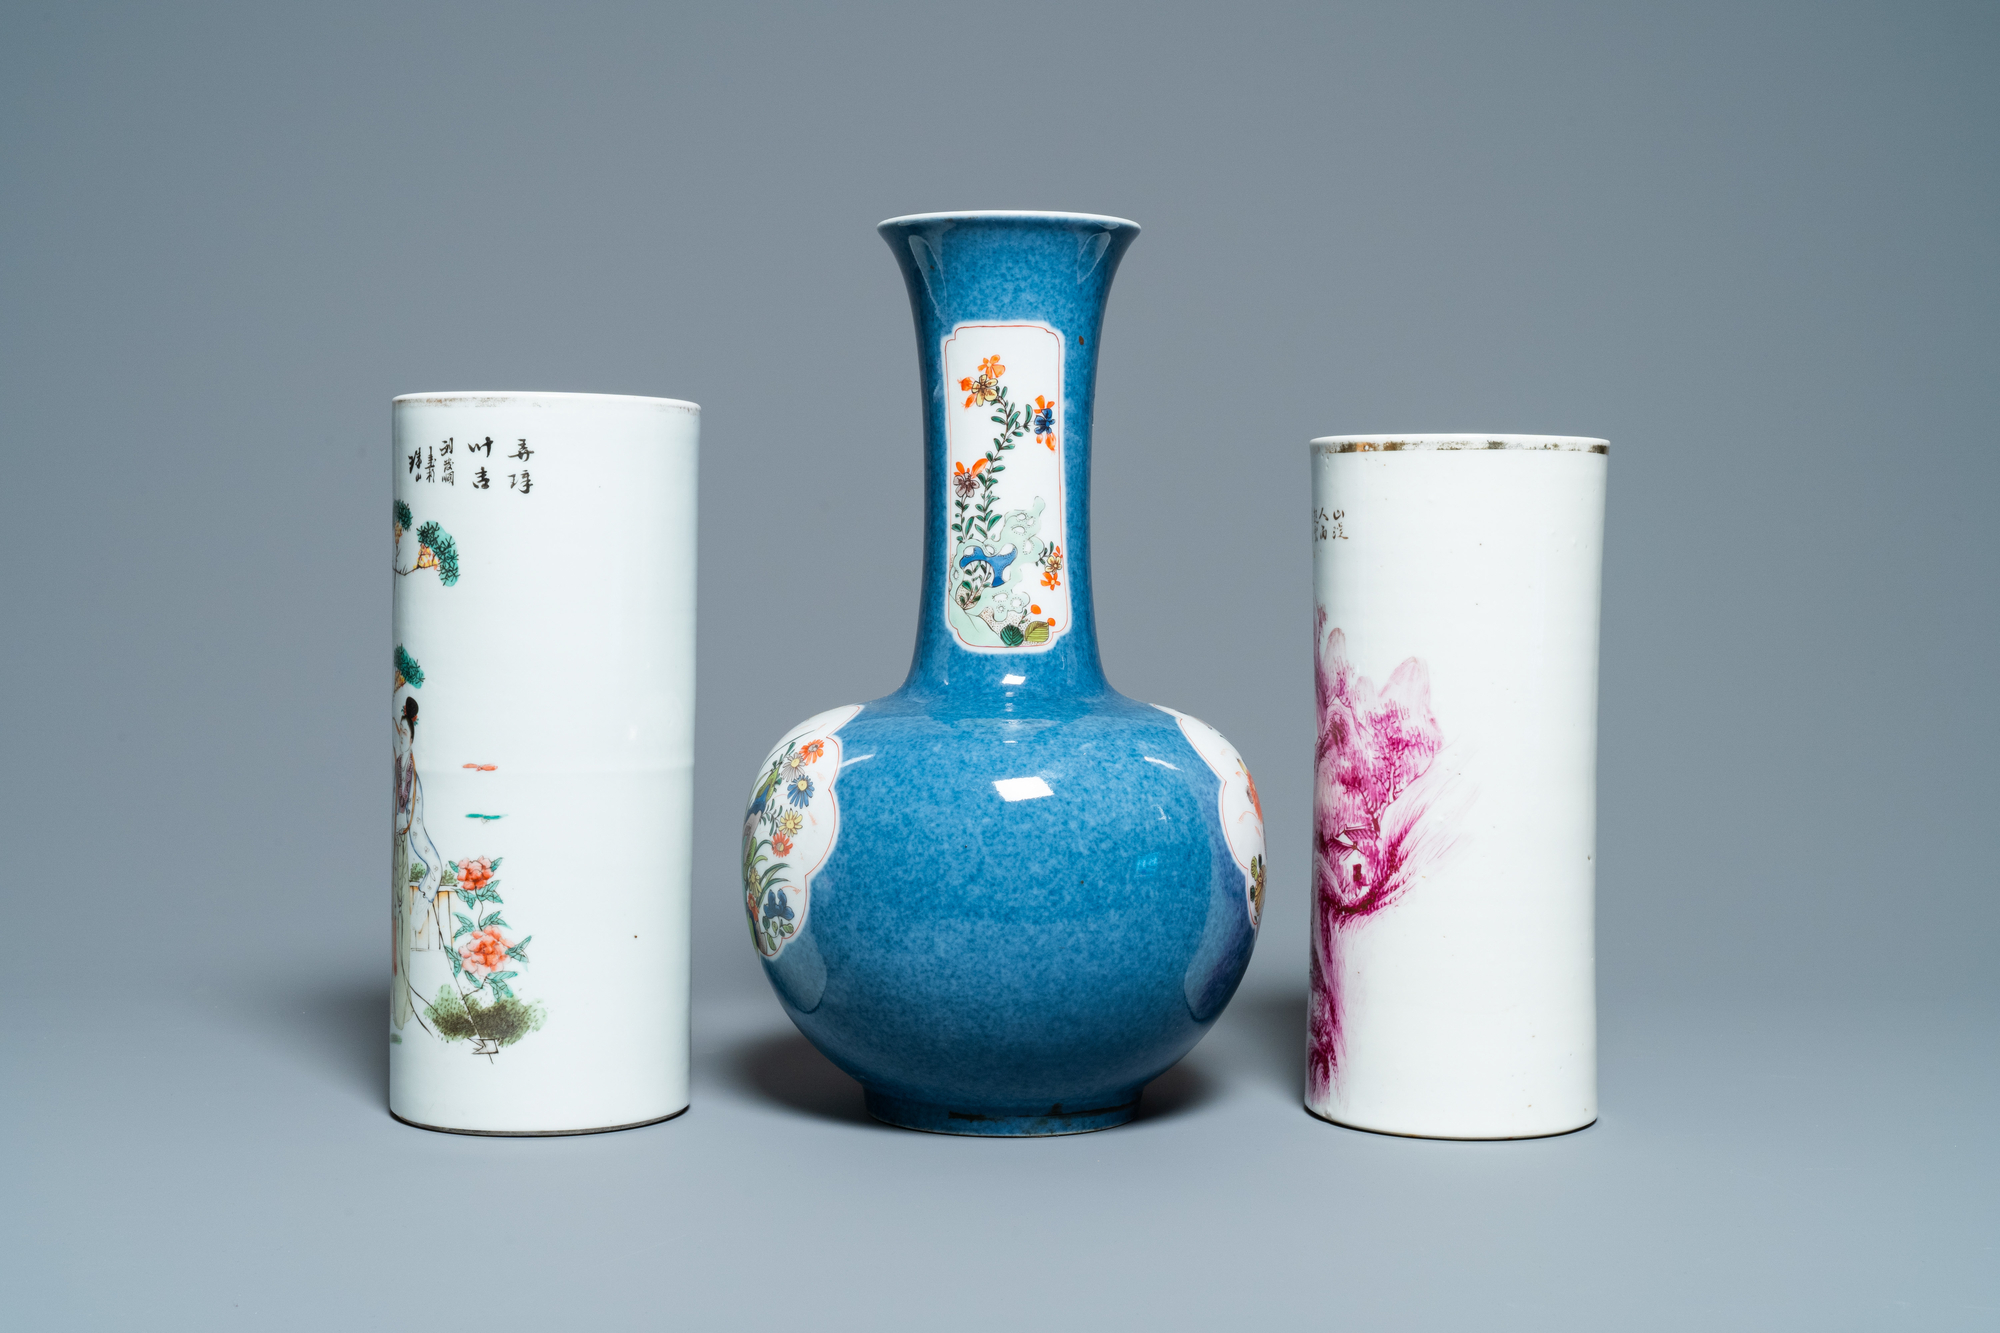 Six Chinese famille rose and verte vases, 19/20th C. - Image 9 of 13